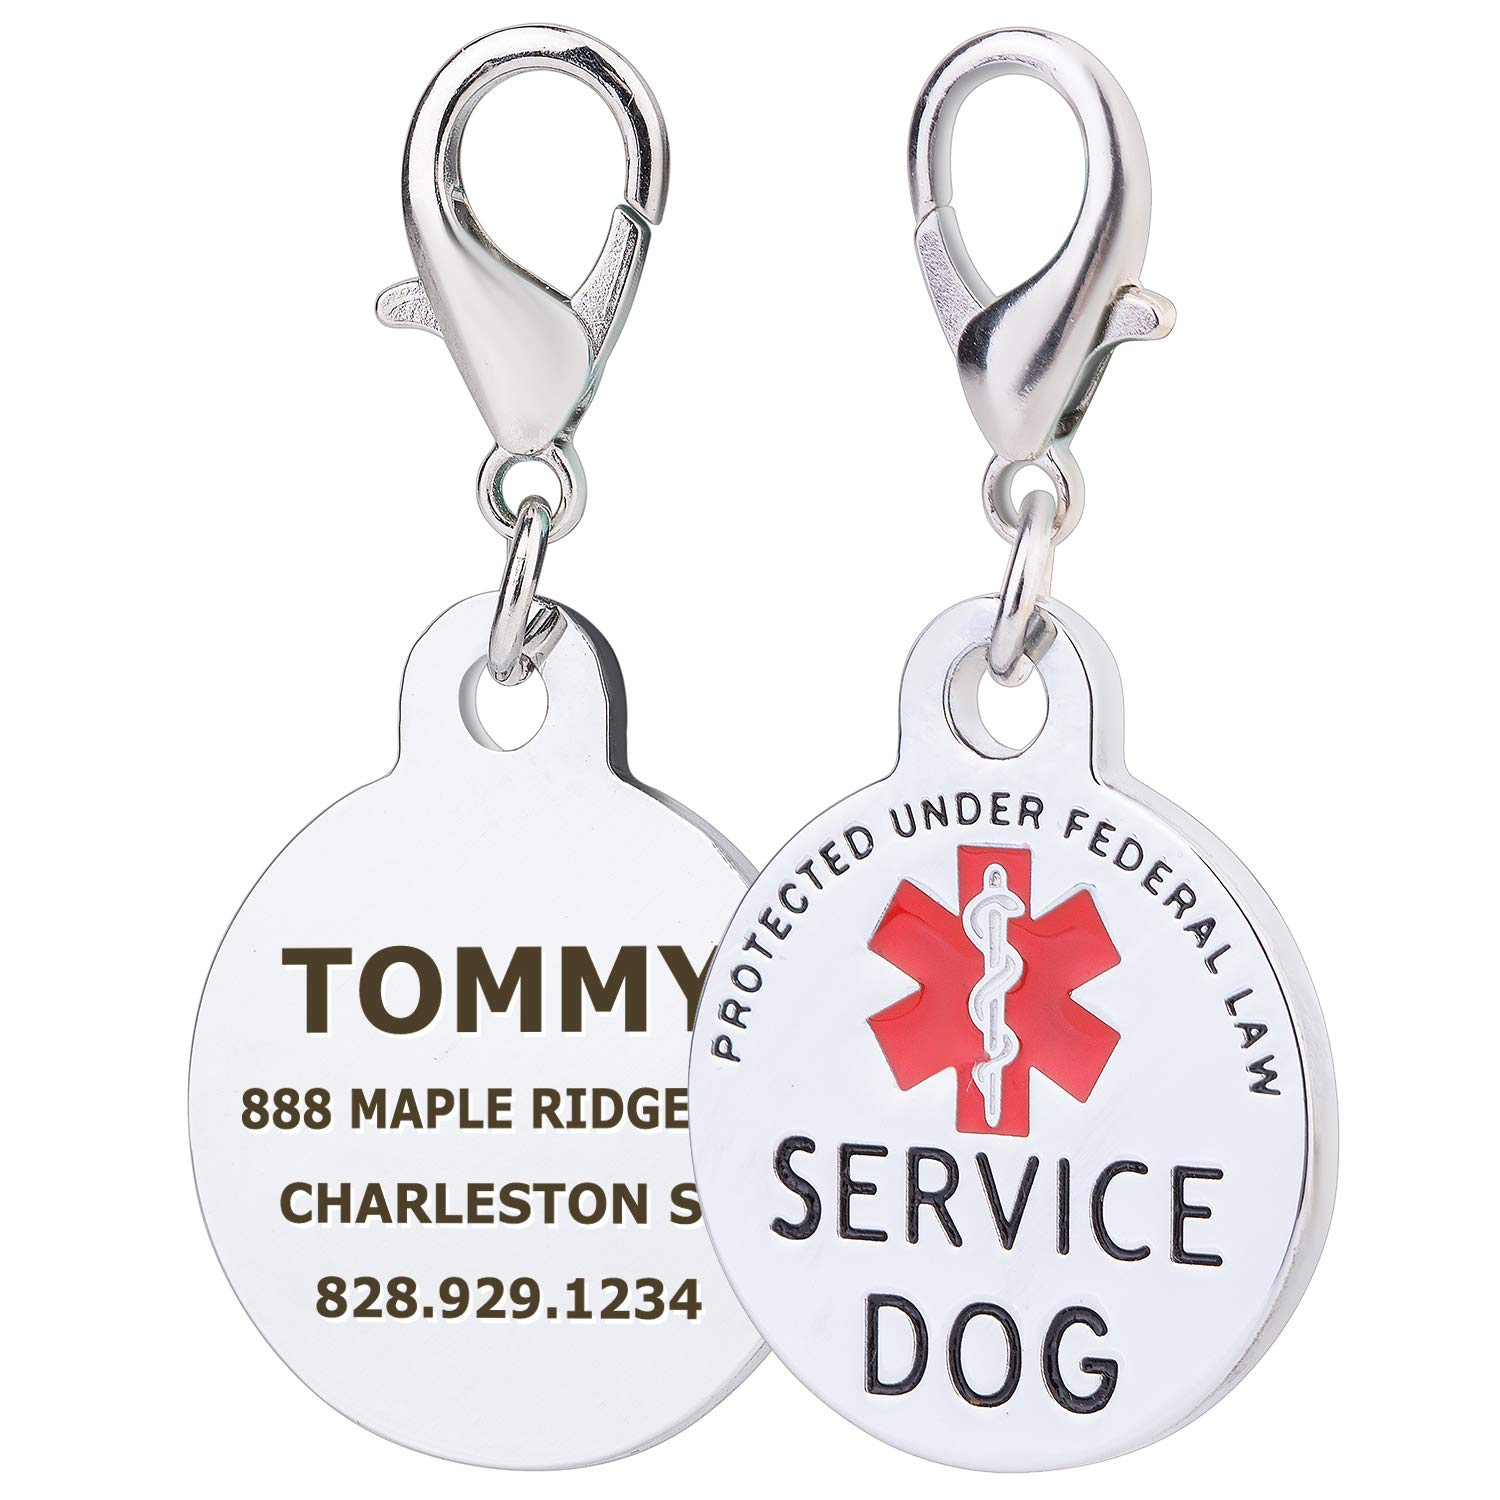 TagME Personalized Working Dog Tags Red Medical Alter Symbol, Stainless Steel Custom Engraved Dog Tags Ltd